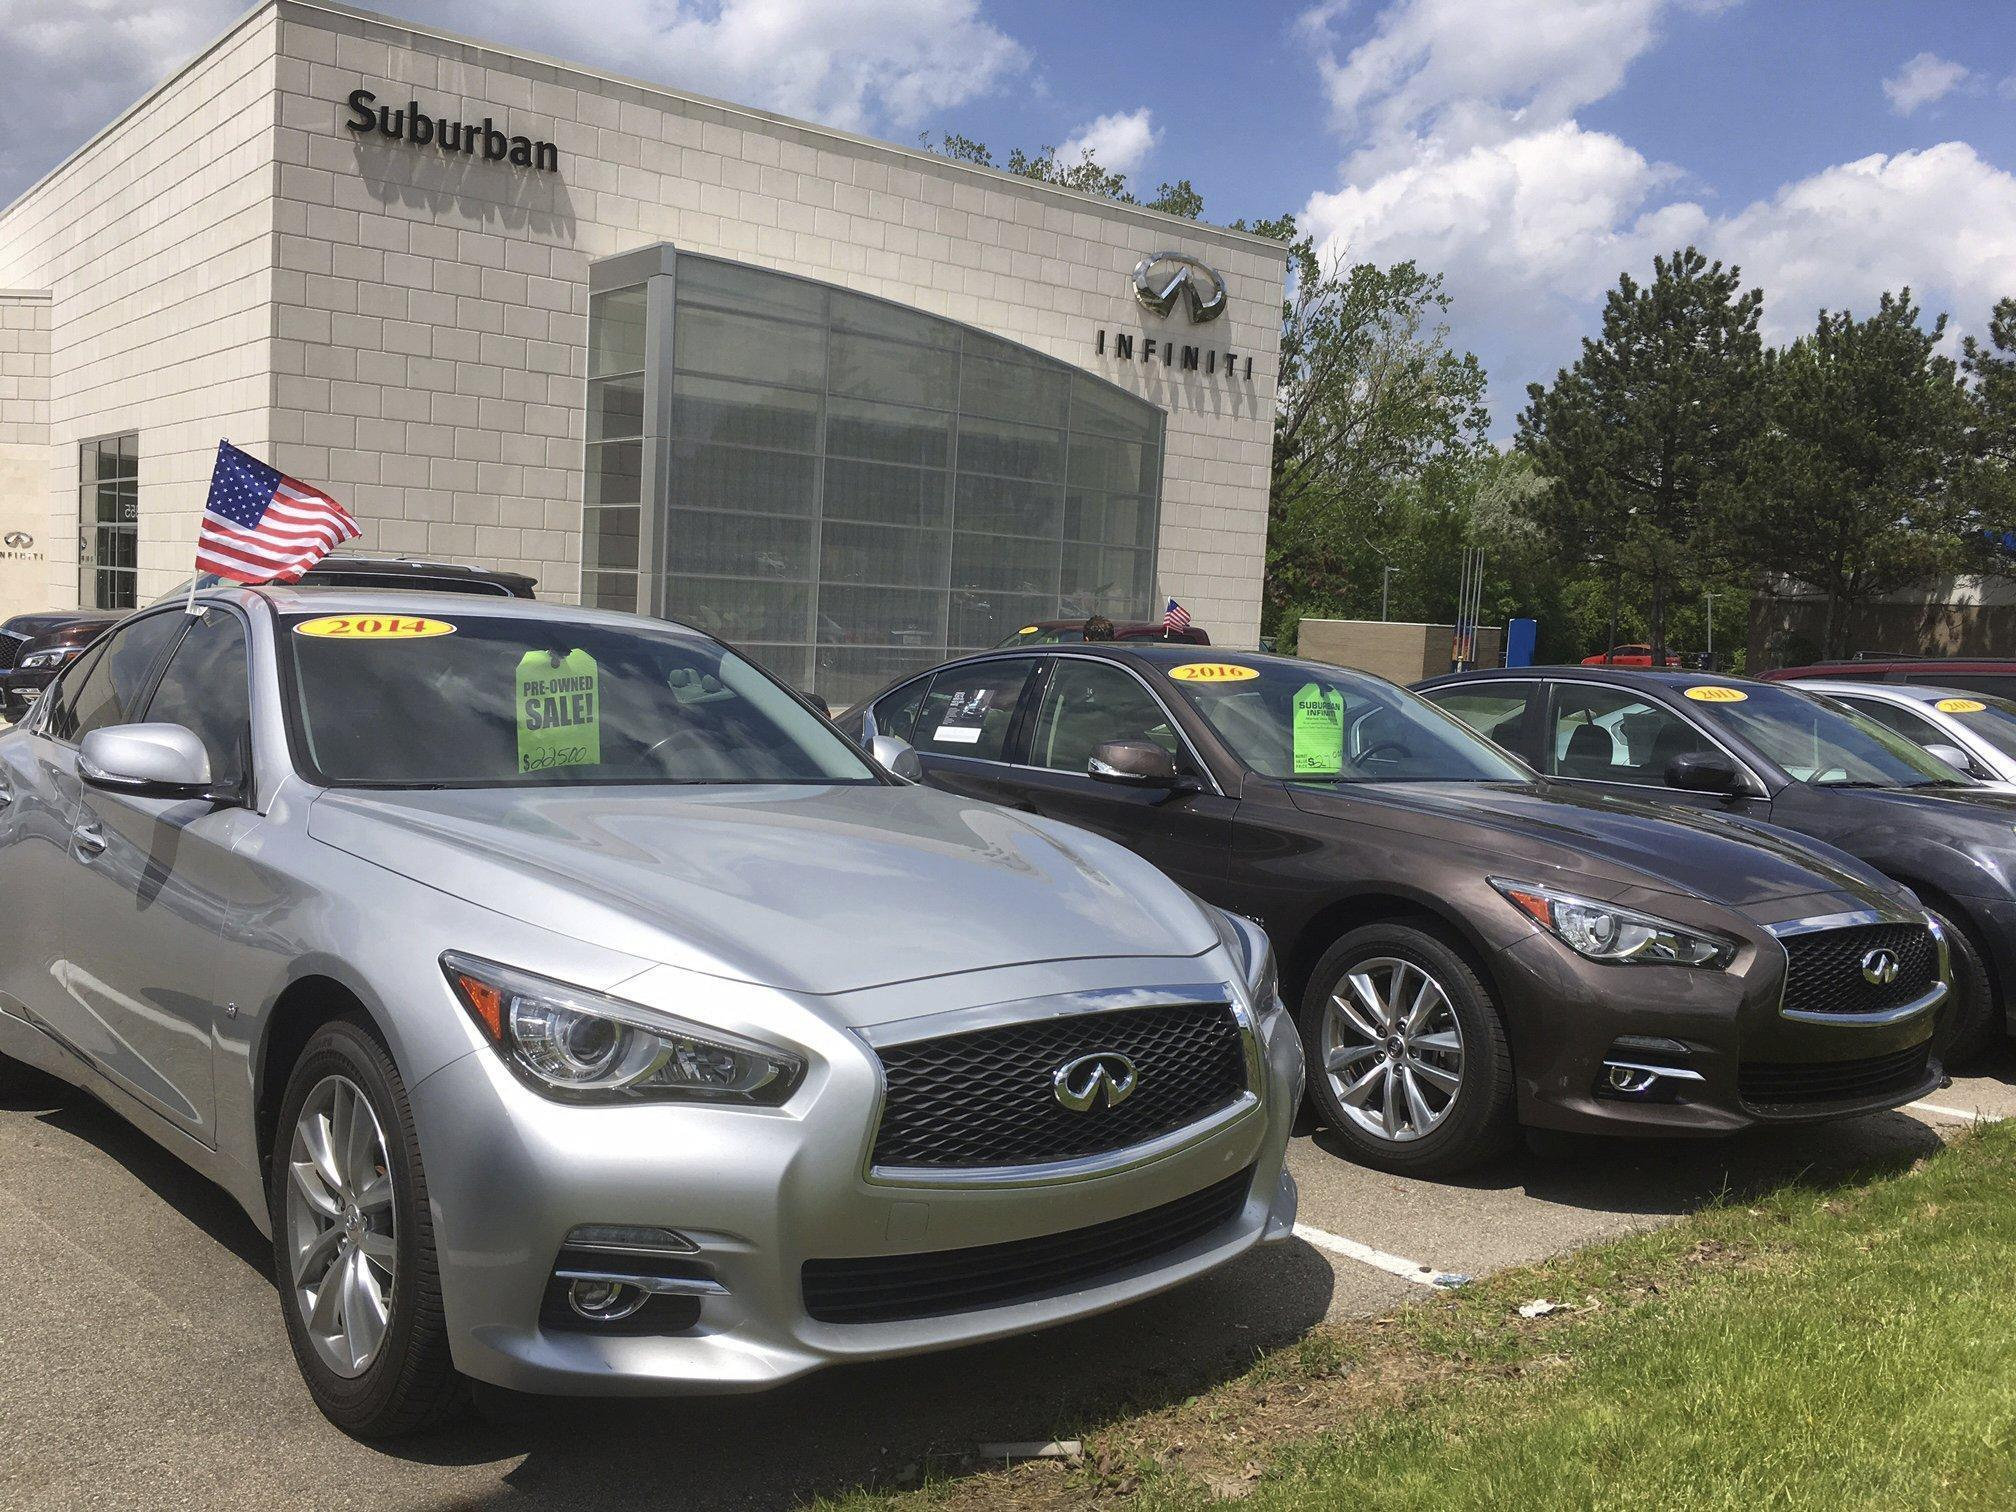 Infiniti Q50 Lease >> 5 times it pays to buy your leased car - Chicago Tribune